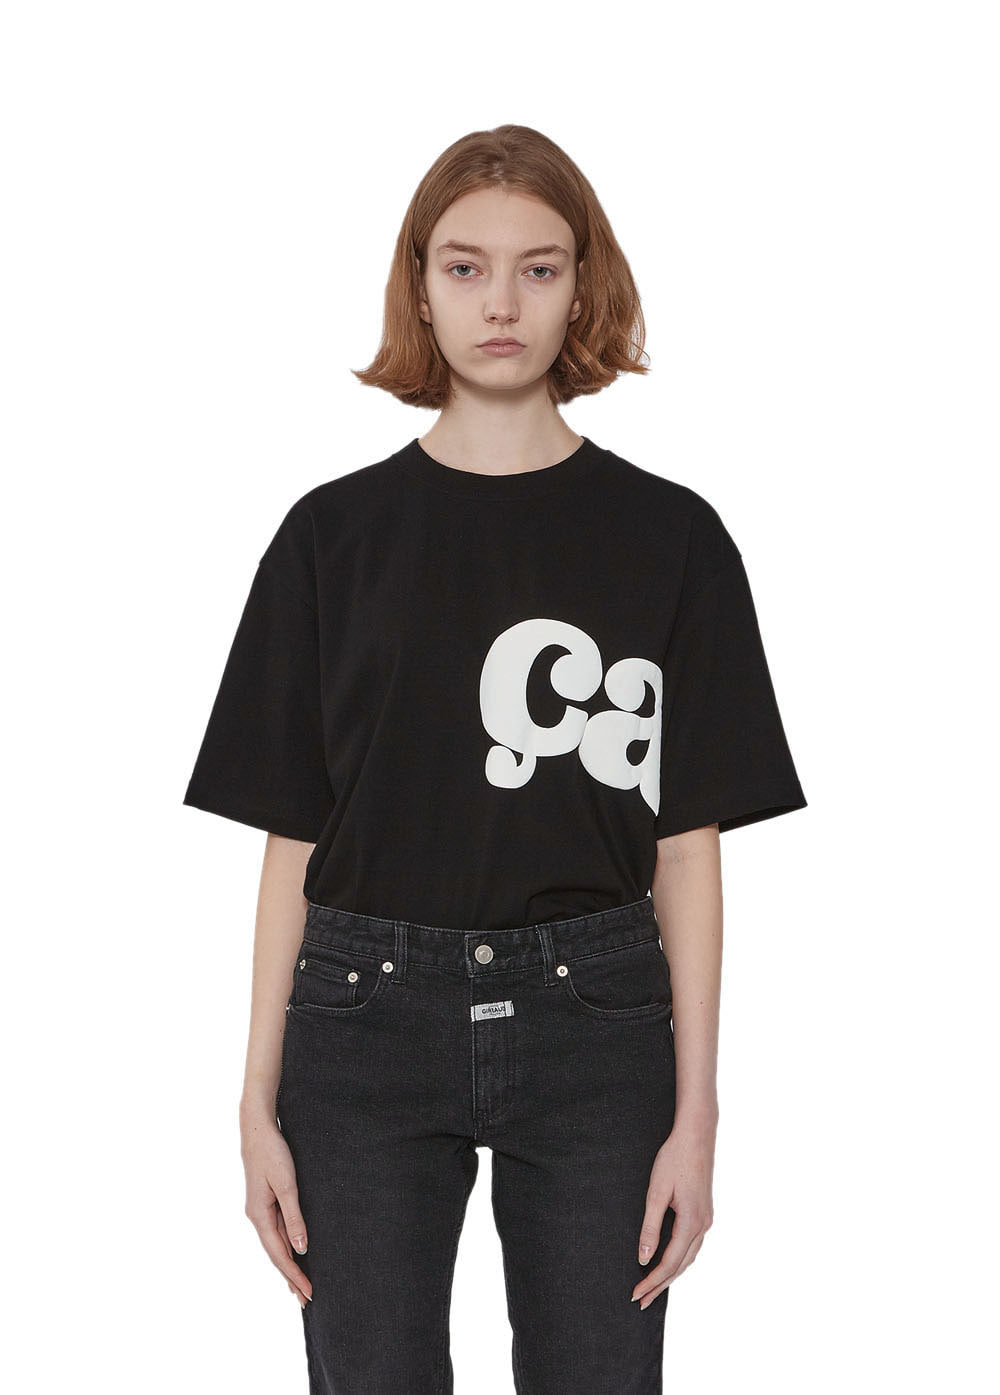 MFG 1st STEP TEE black